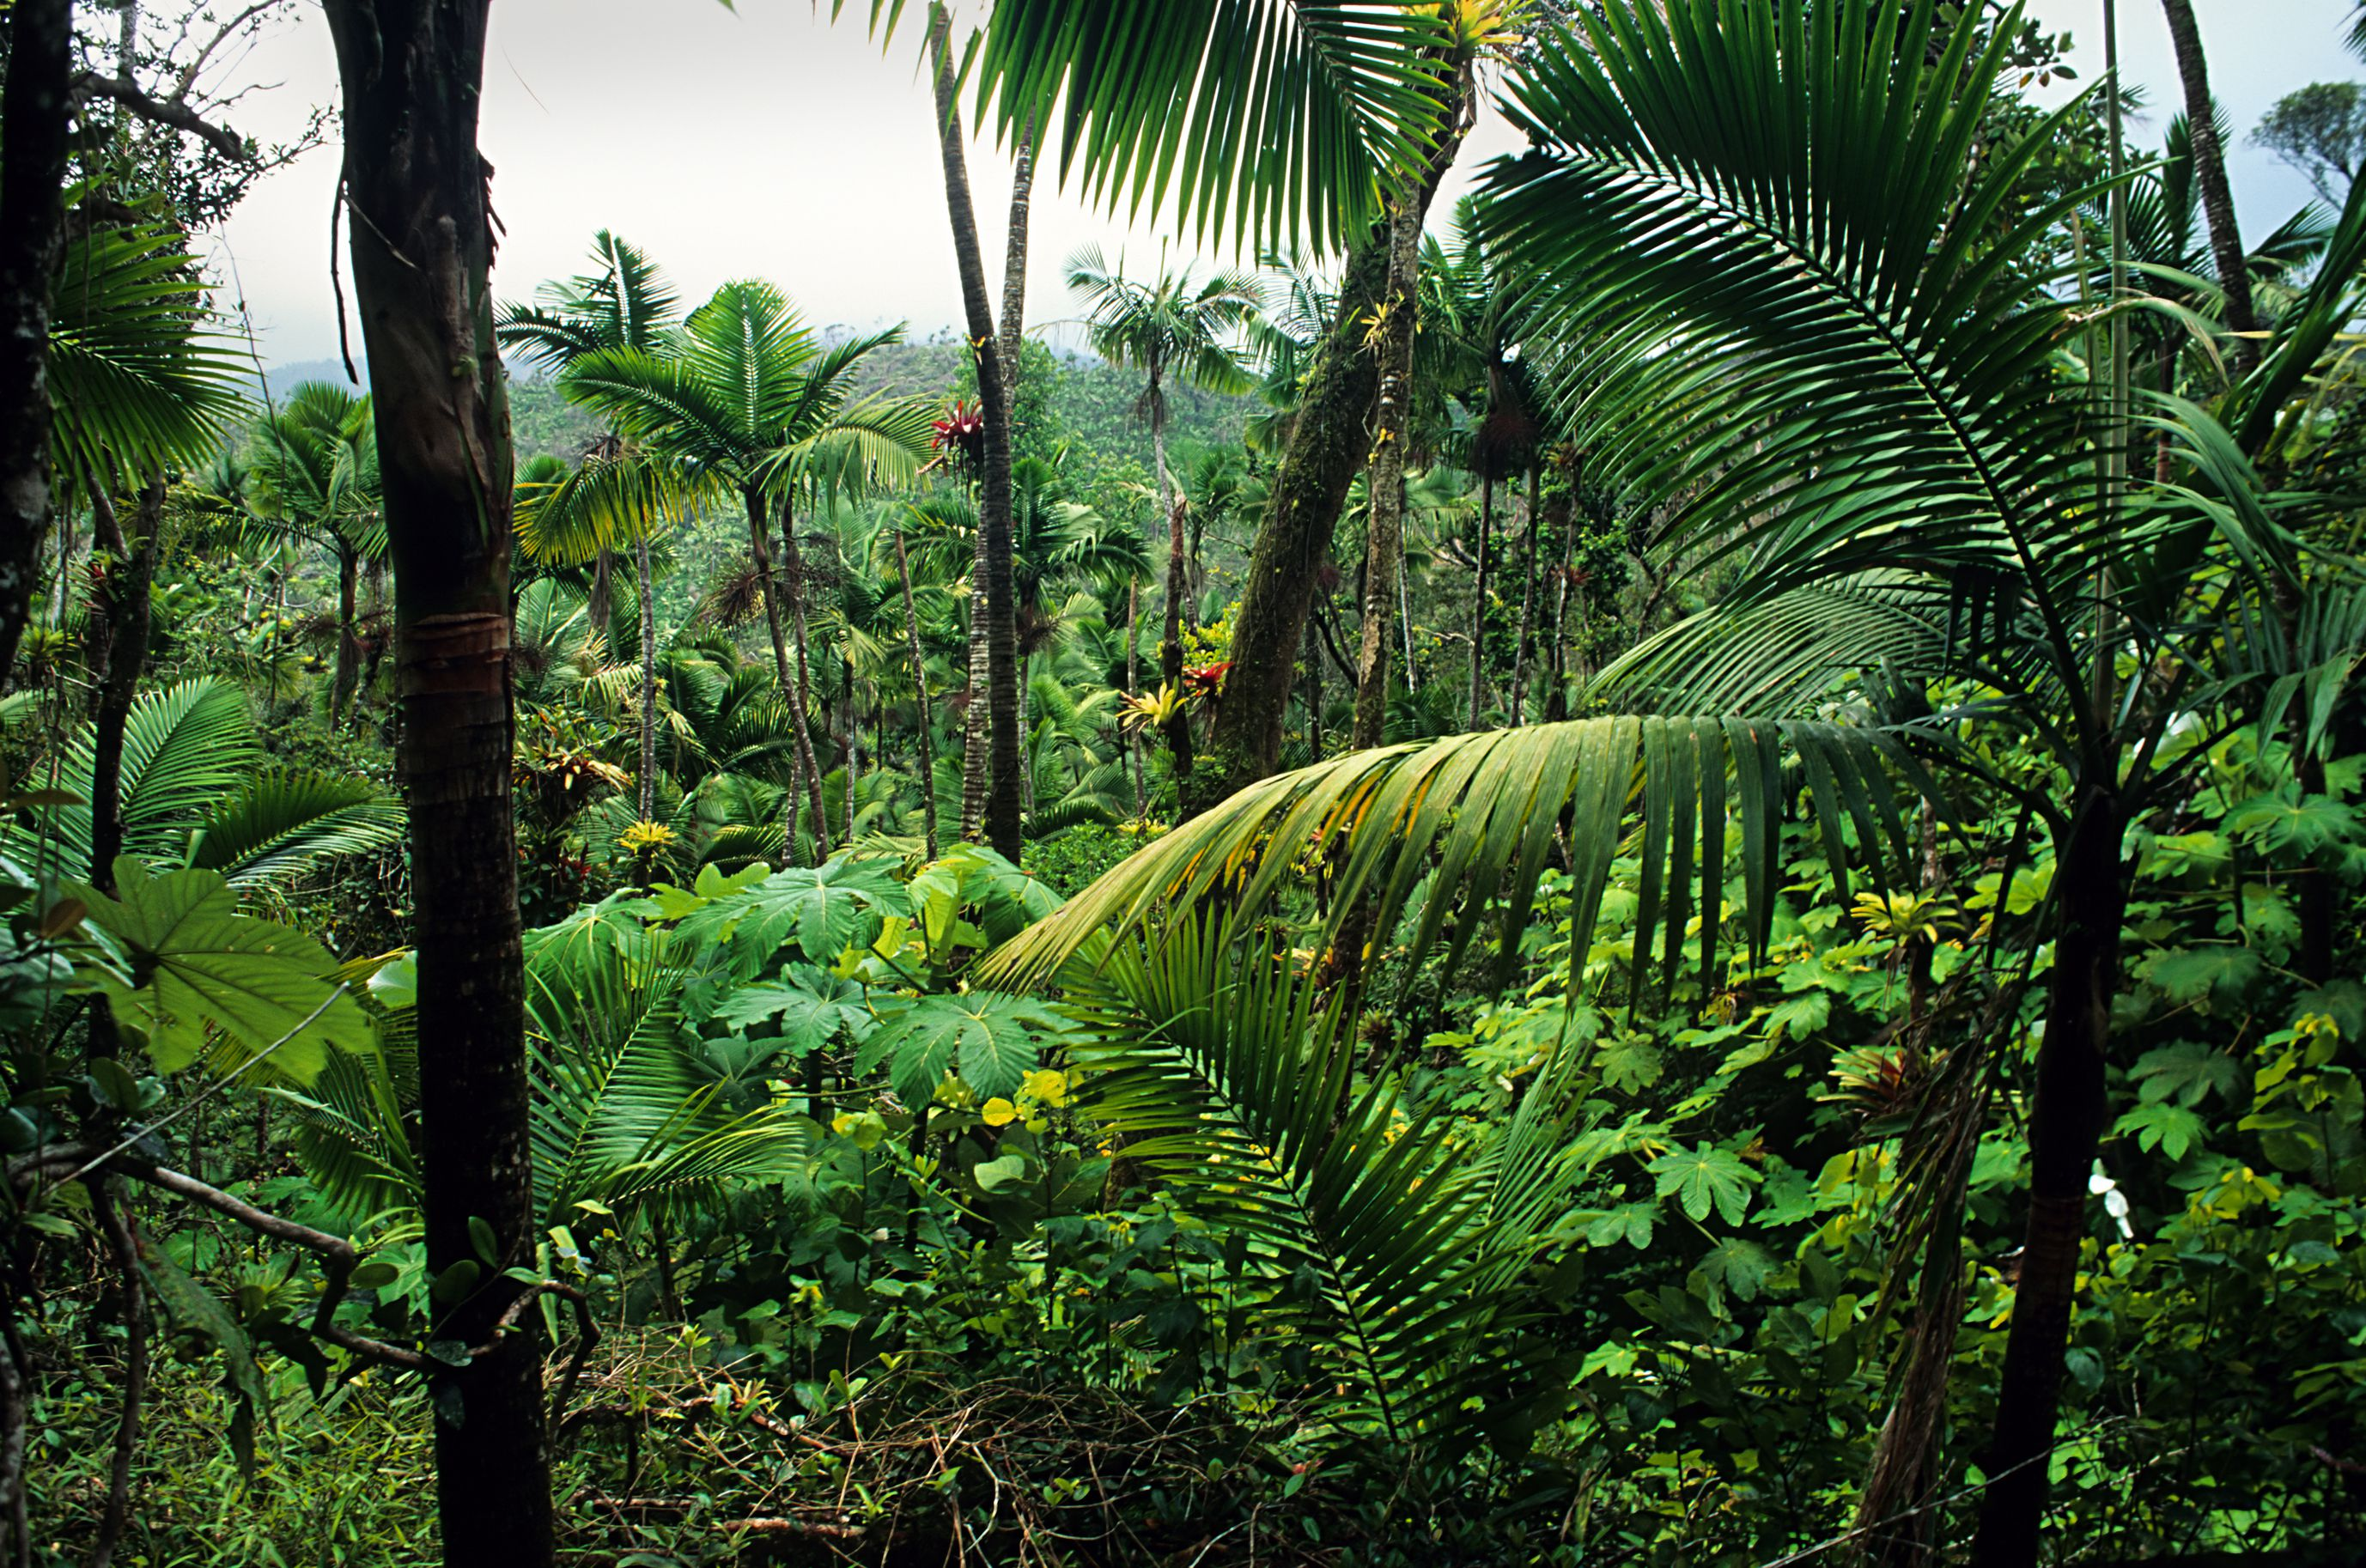 Caribbean National Forest, El Yunque